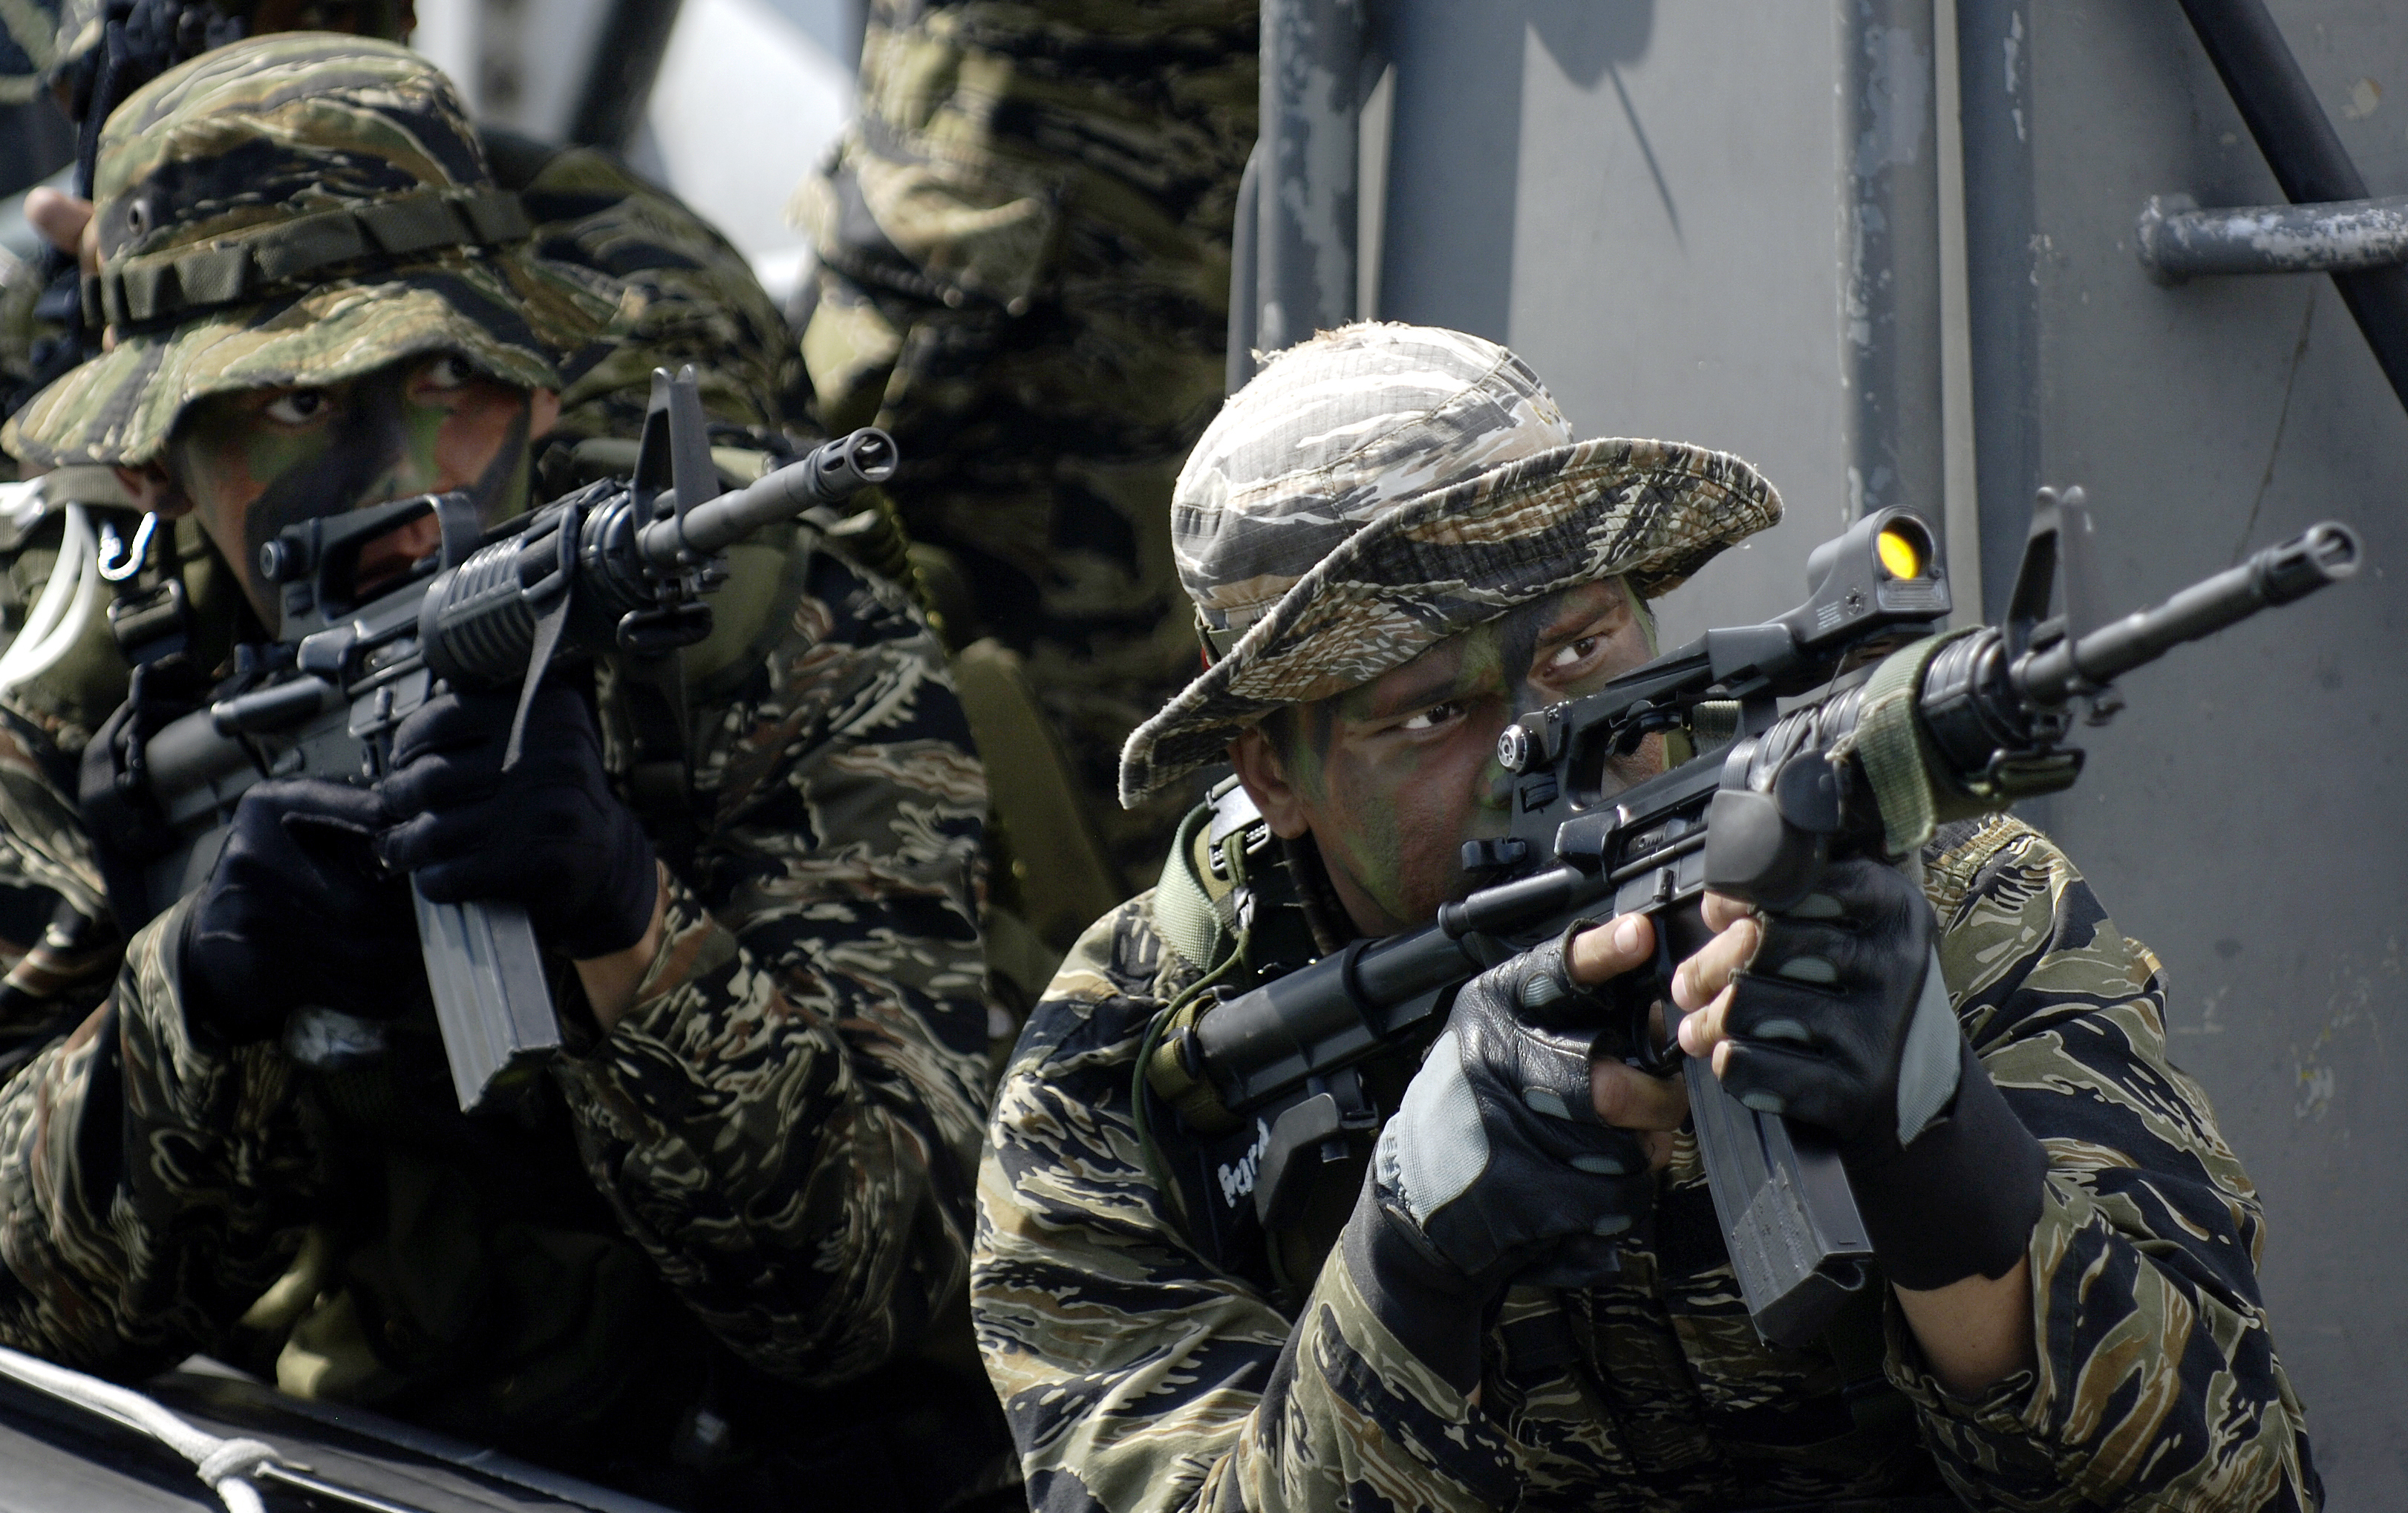 A Filipino Navy SEAL team demonstrates their capabilities to the